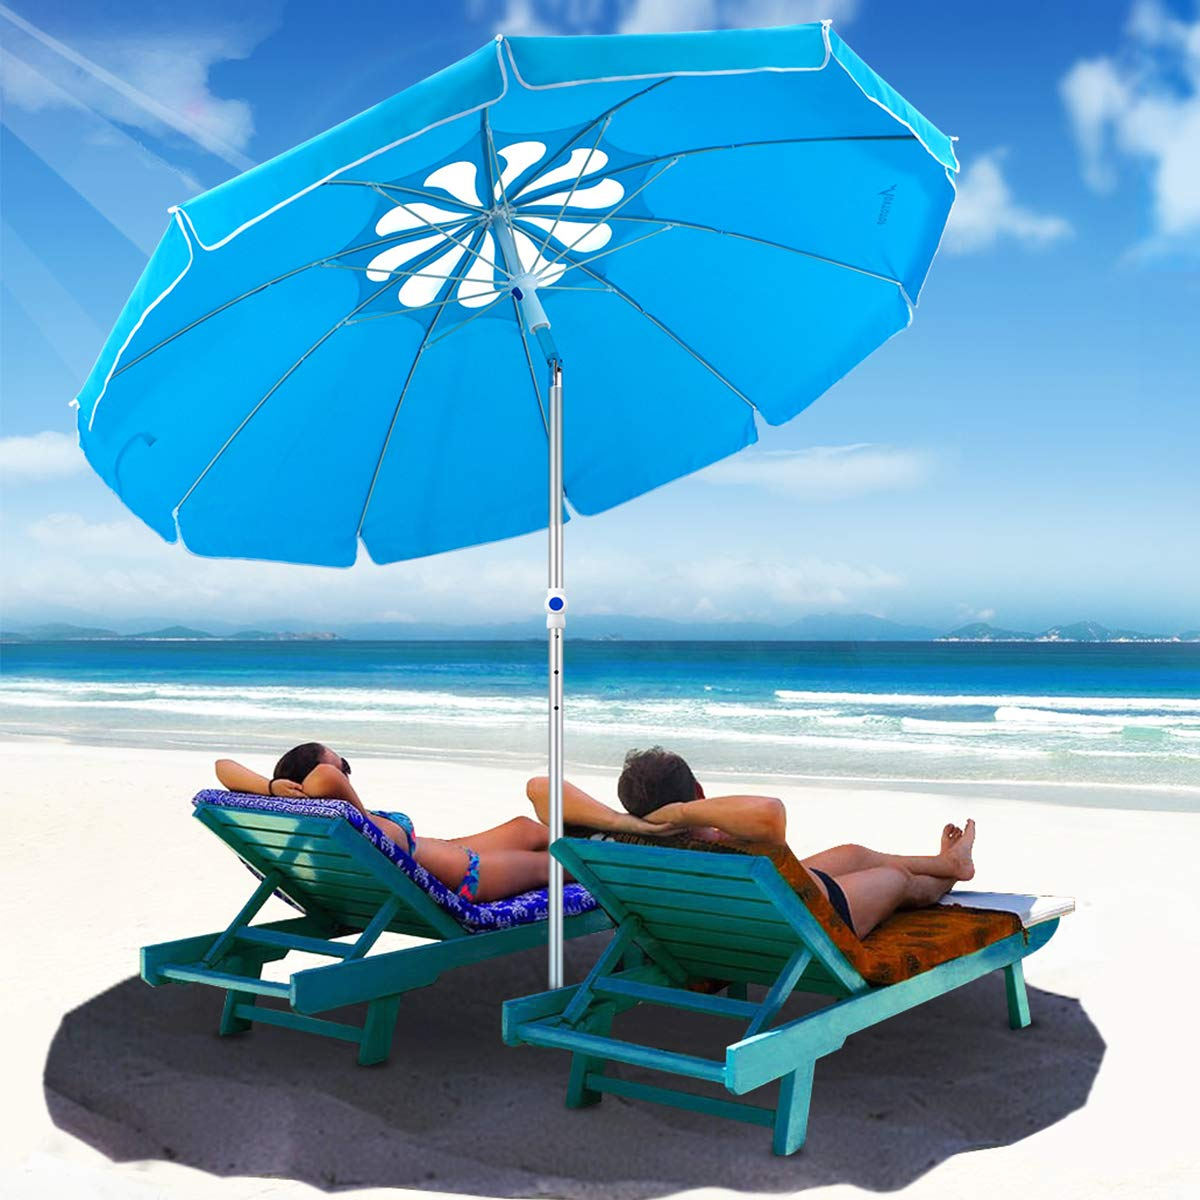 MOVTOTOP 6.5ft Beach Umbrella with Tilt Aluminum Pole and UPF 100+, Flower Vents Design and Portable Sun Shelter for Sand and Outdoor Activities by MOVTOTOP